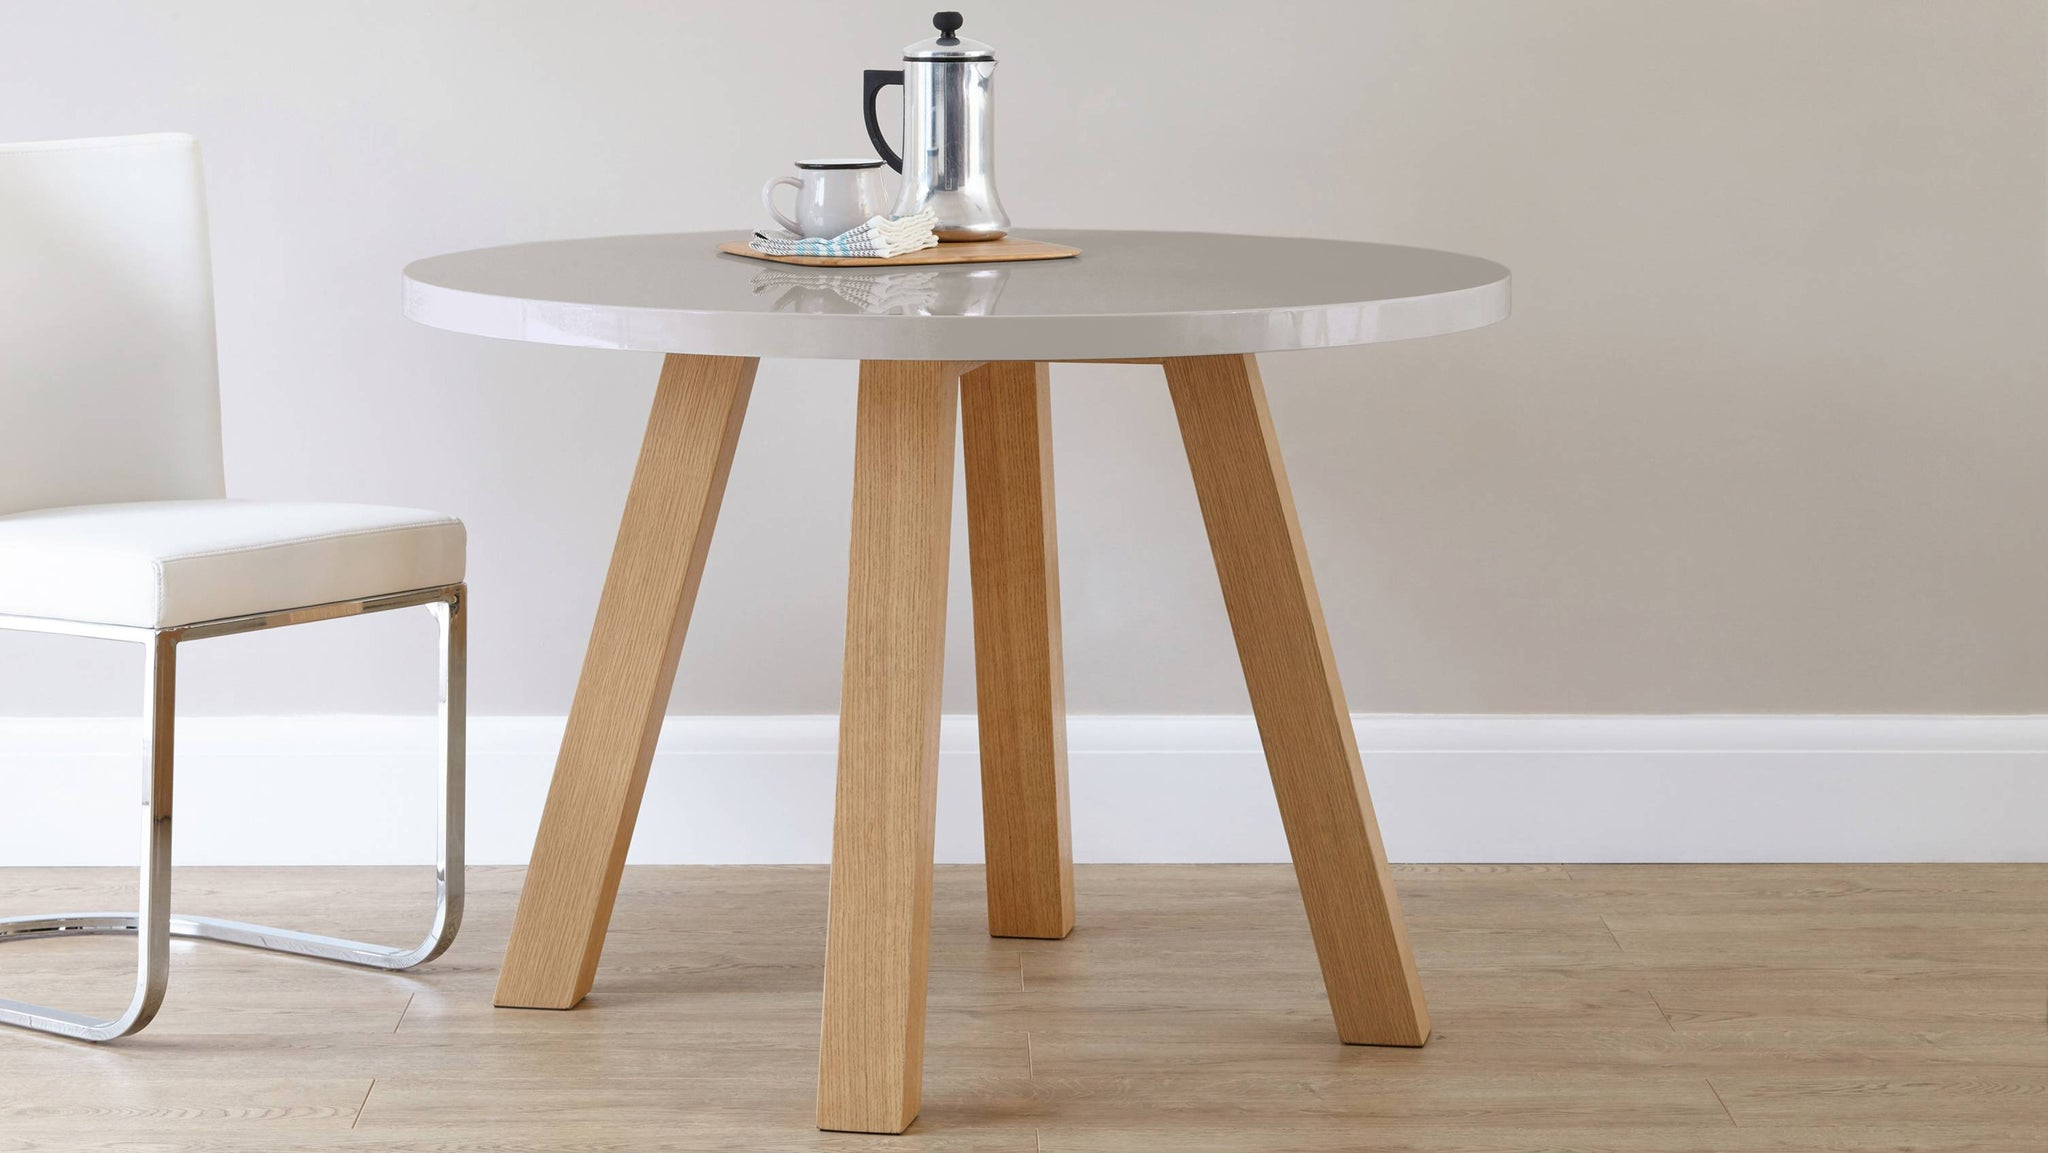 4 Seater Oak Dining Table Exclusively Danetti with Julia Kendell Range